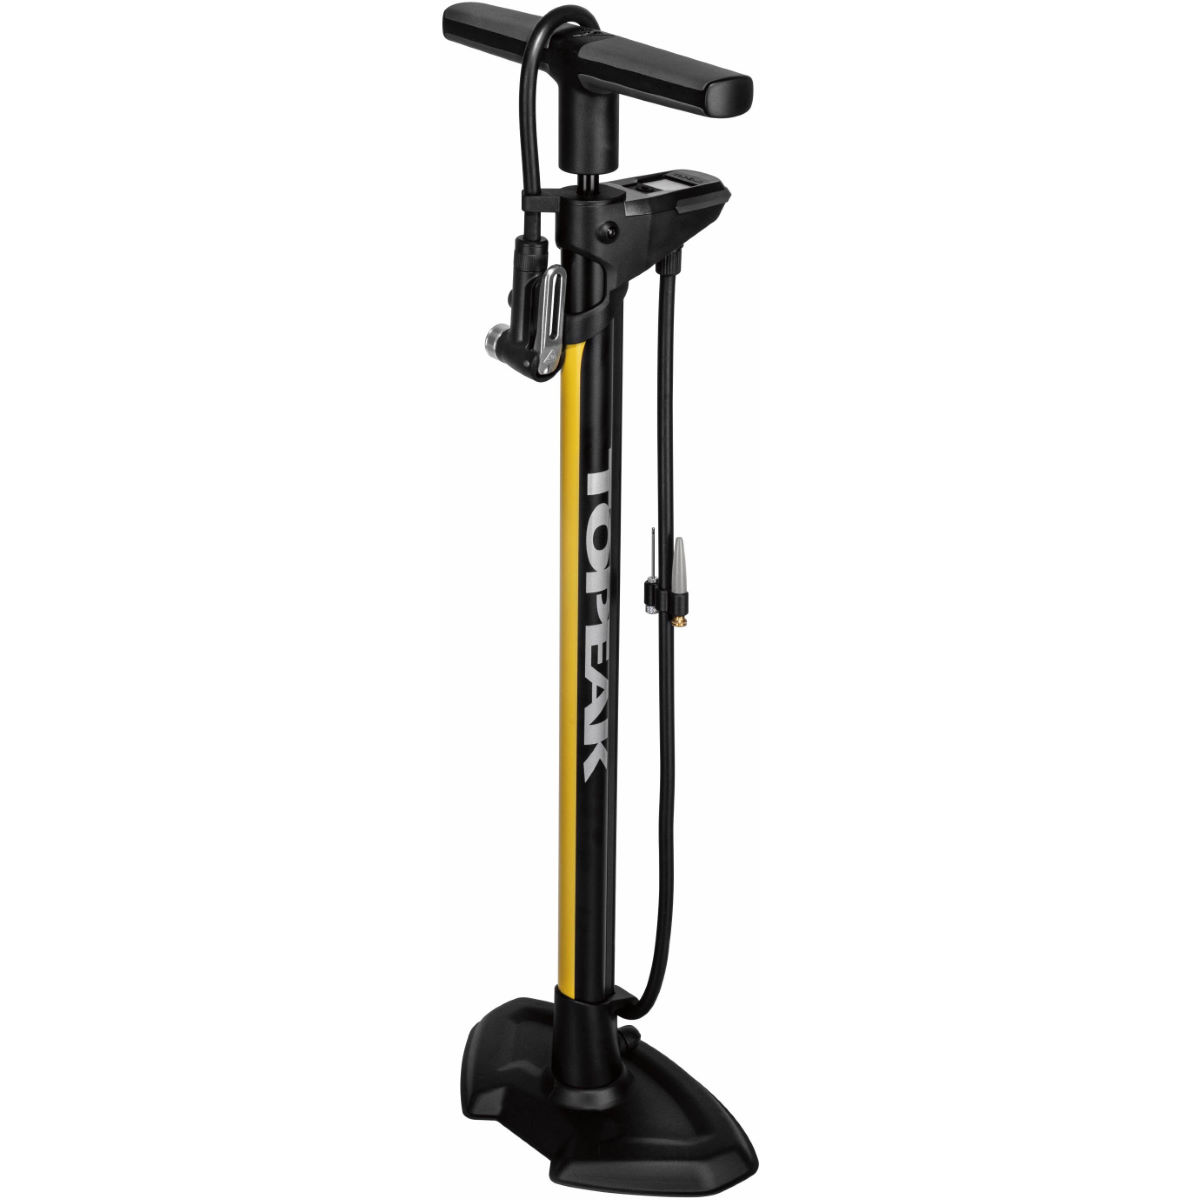 Topeak Topeak Joe Blow Pro Digital Track Pump   Track Pumps